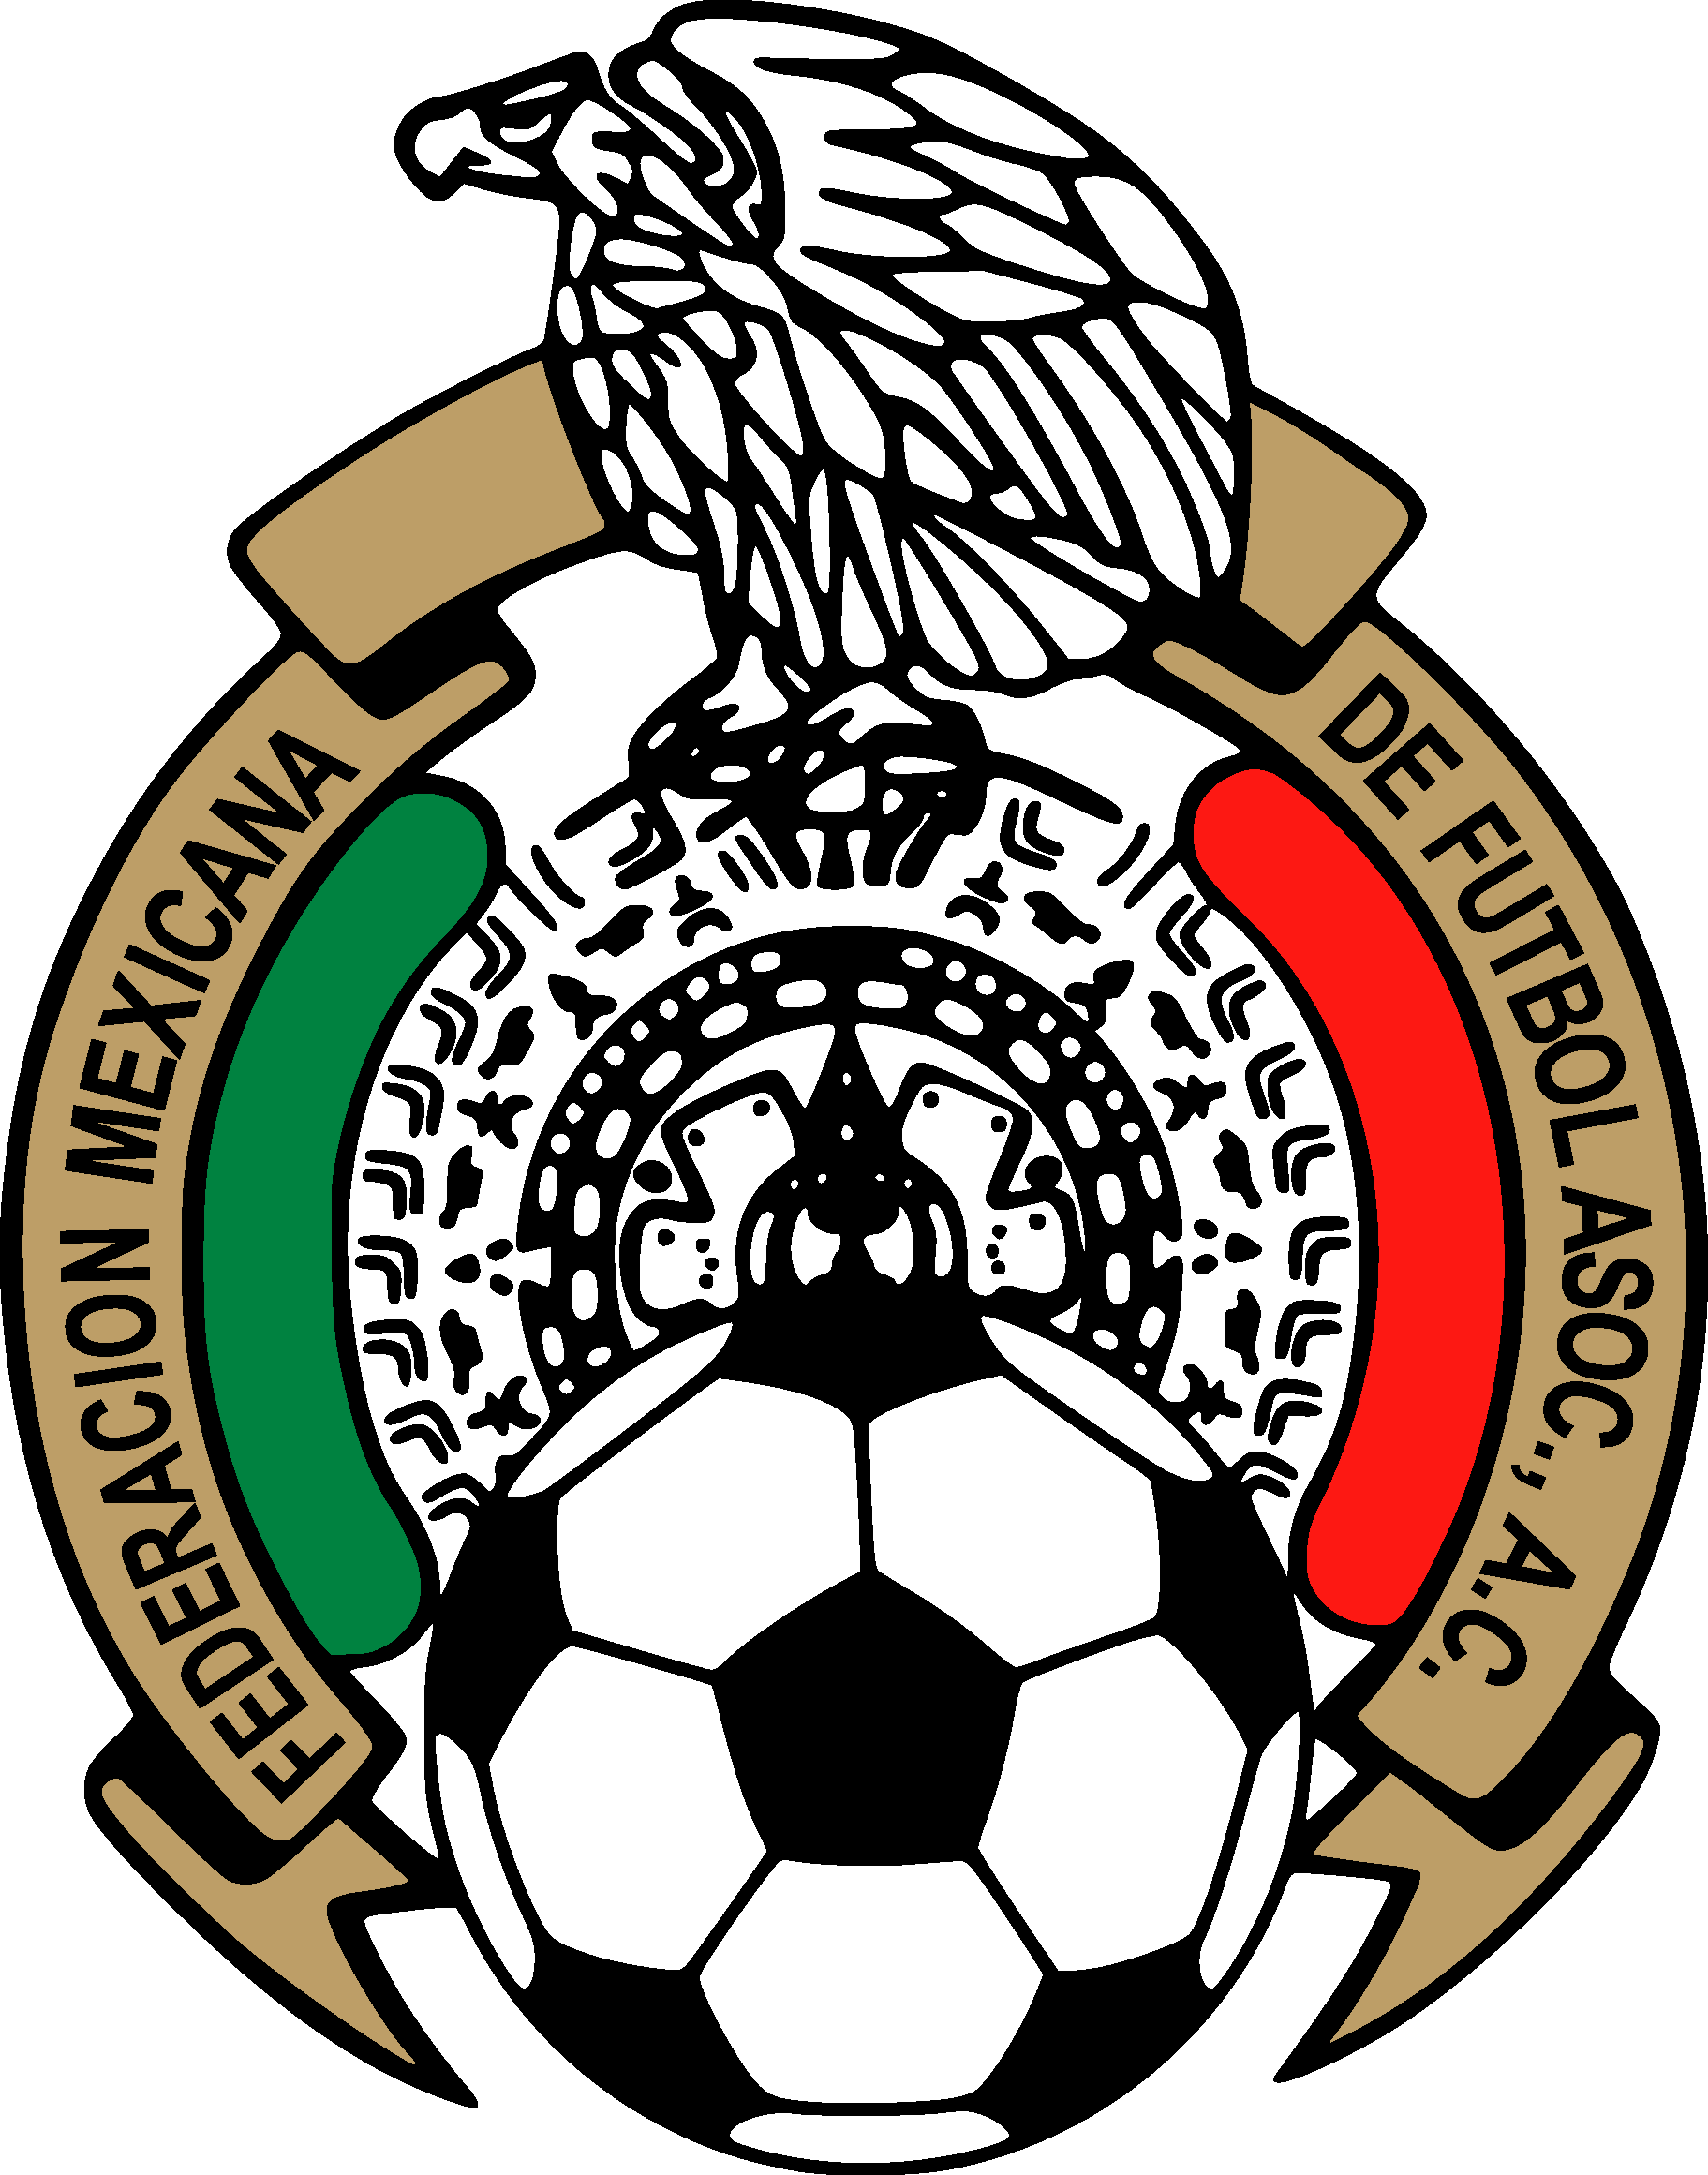 Mexican Football Federation & Mexico National Football Team.